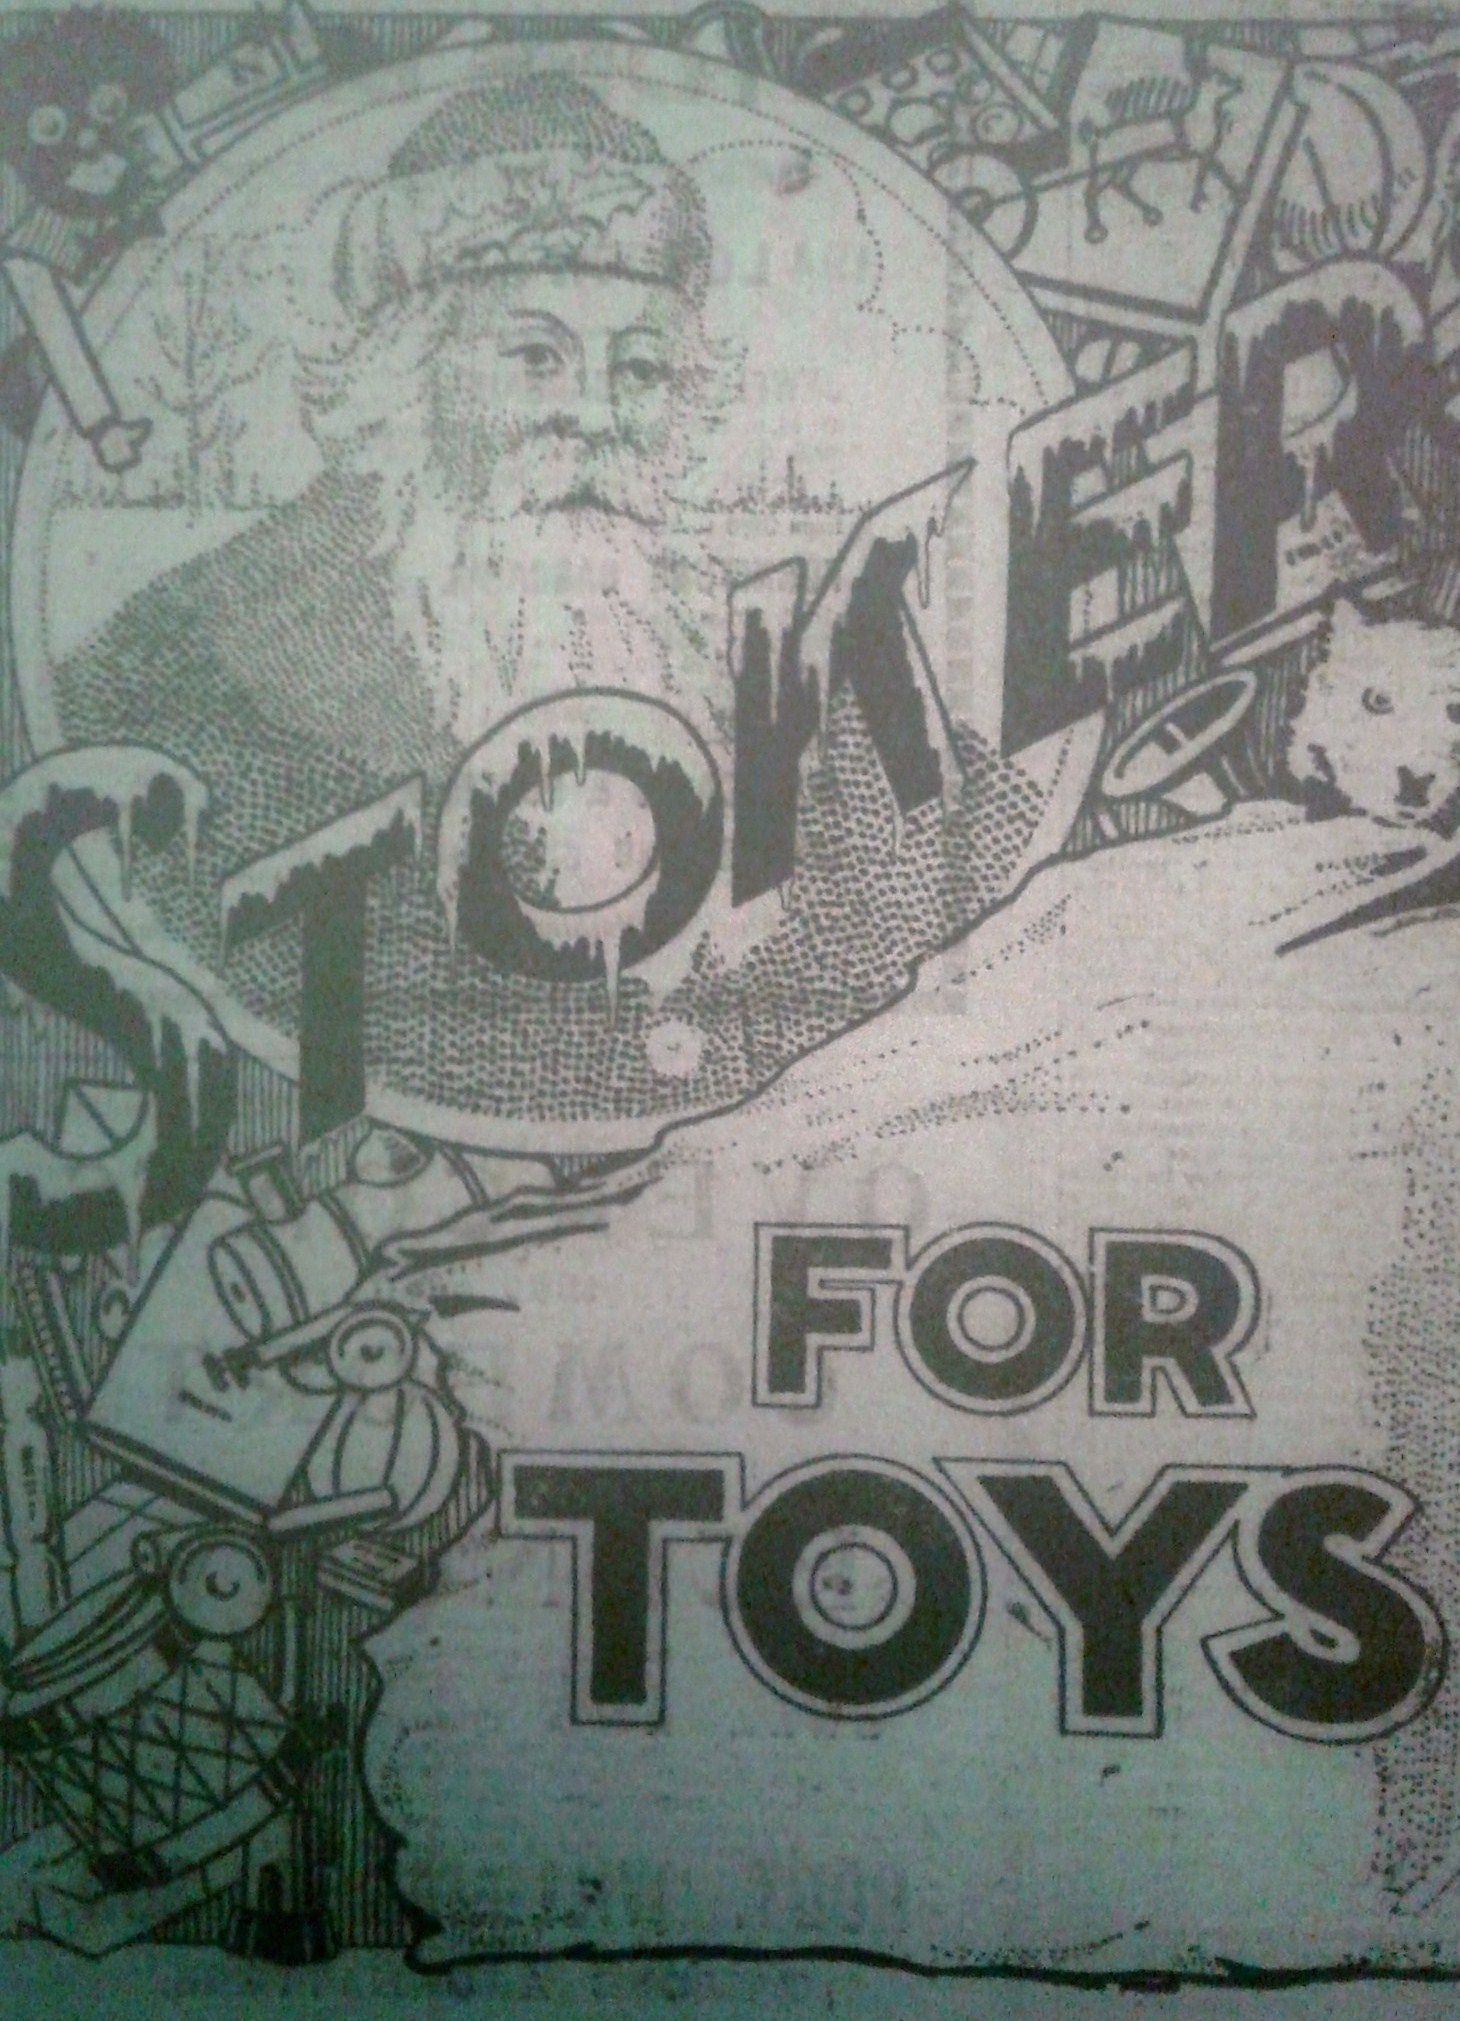 An advert for Stokers Toys